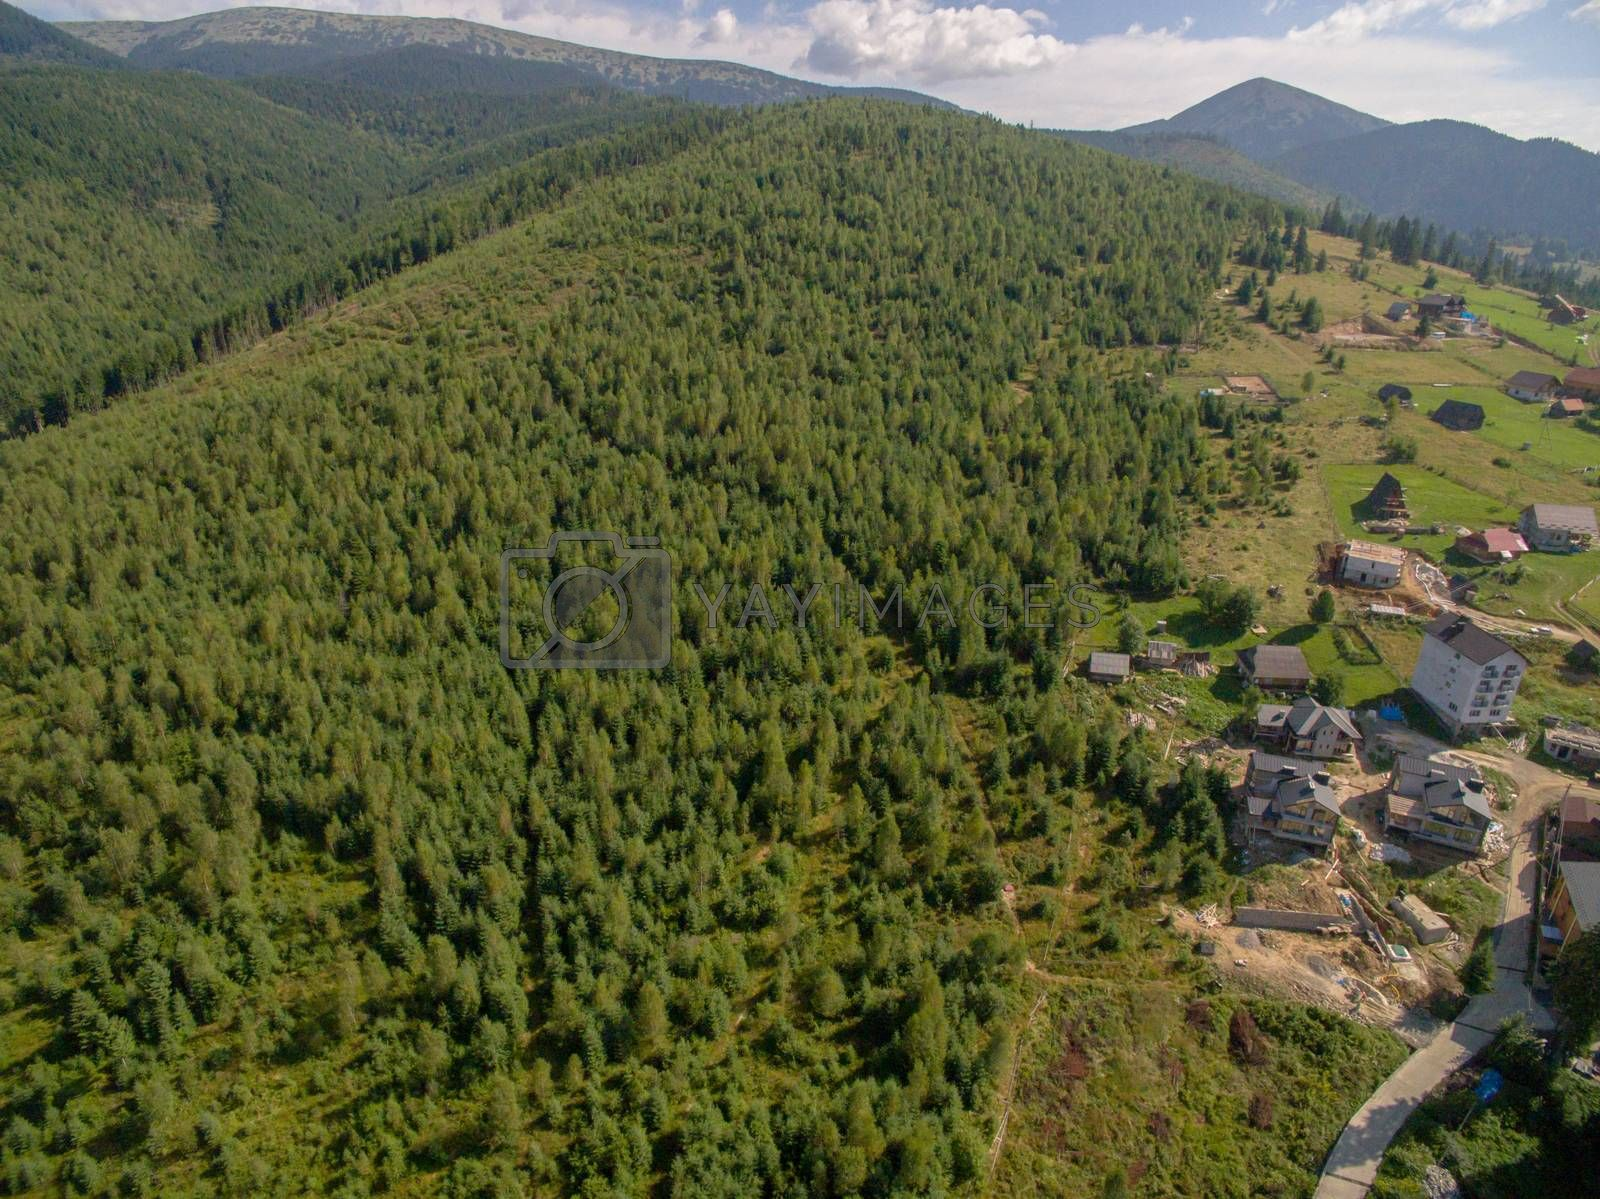 Aerial View of Great Green Ridge. Wooded Mountain Landscape